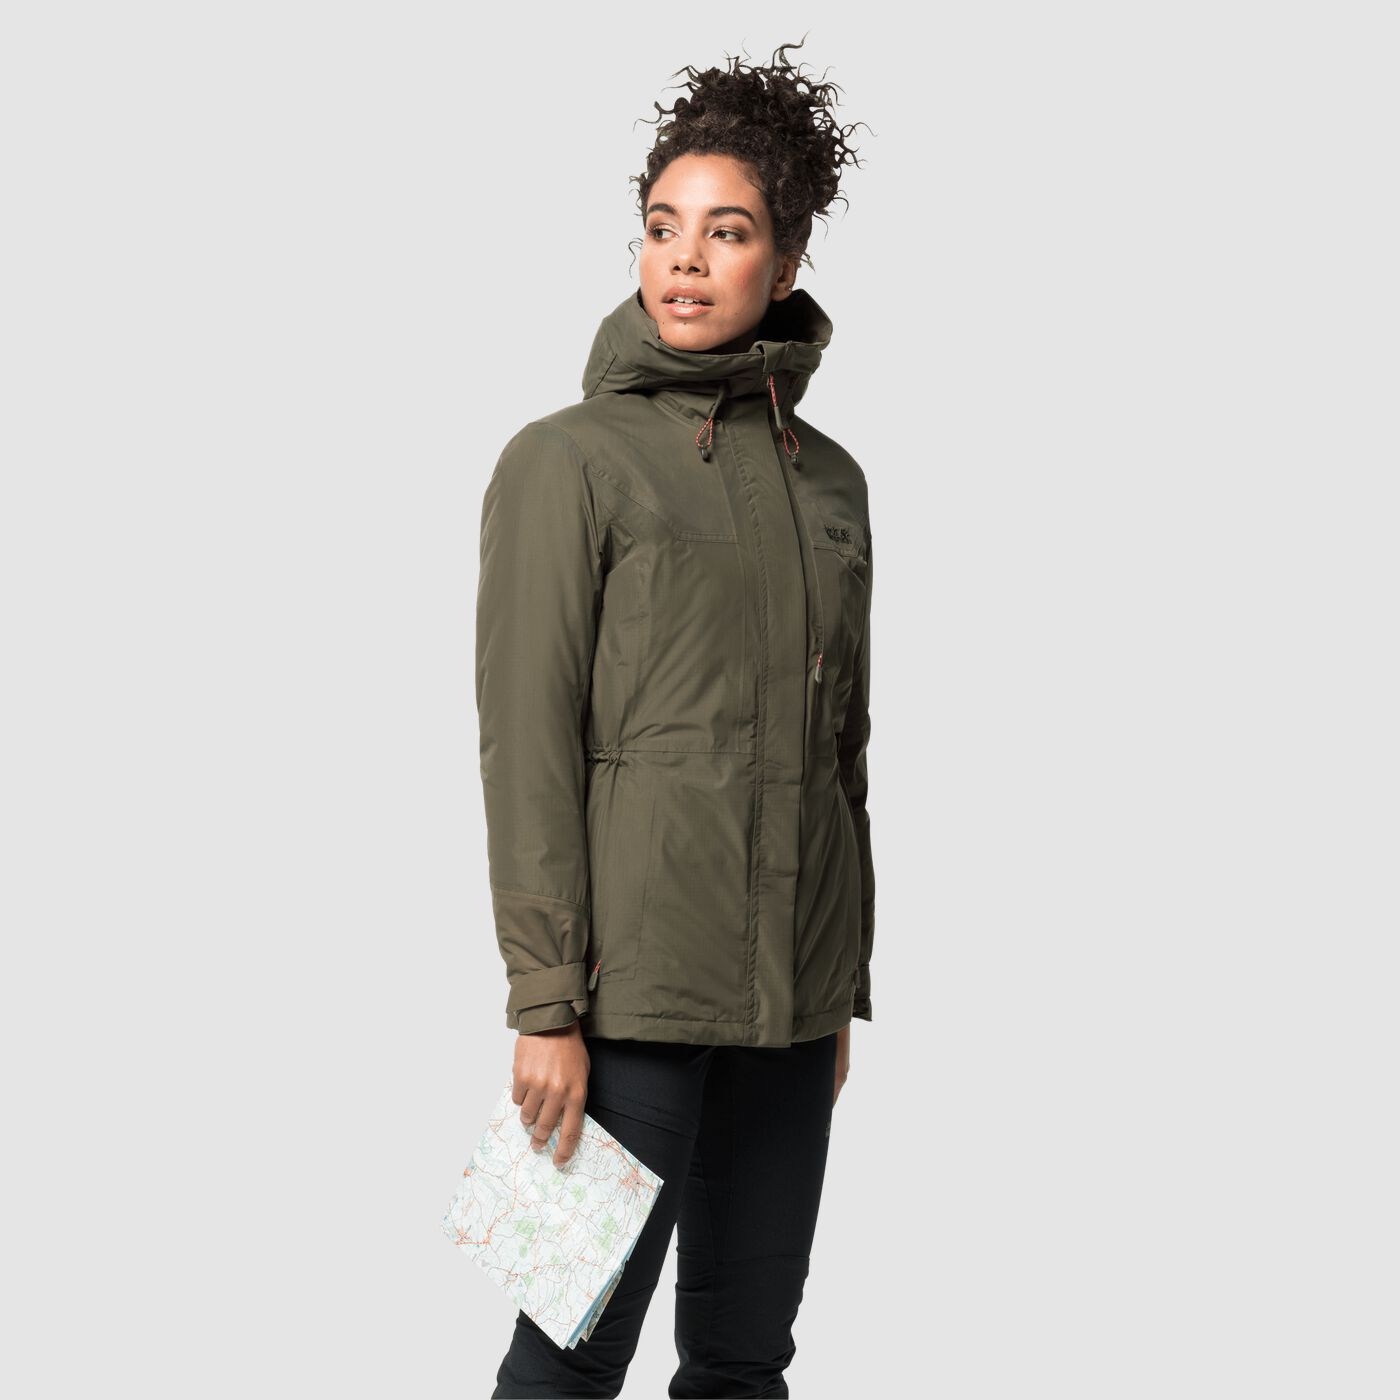 BRECON RANGE INSULATED JKT W